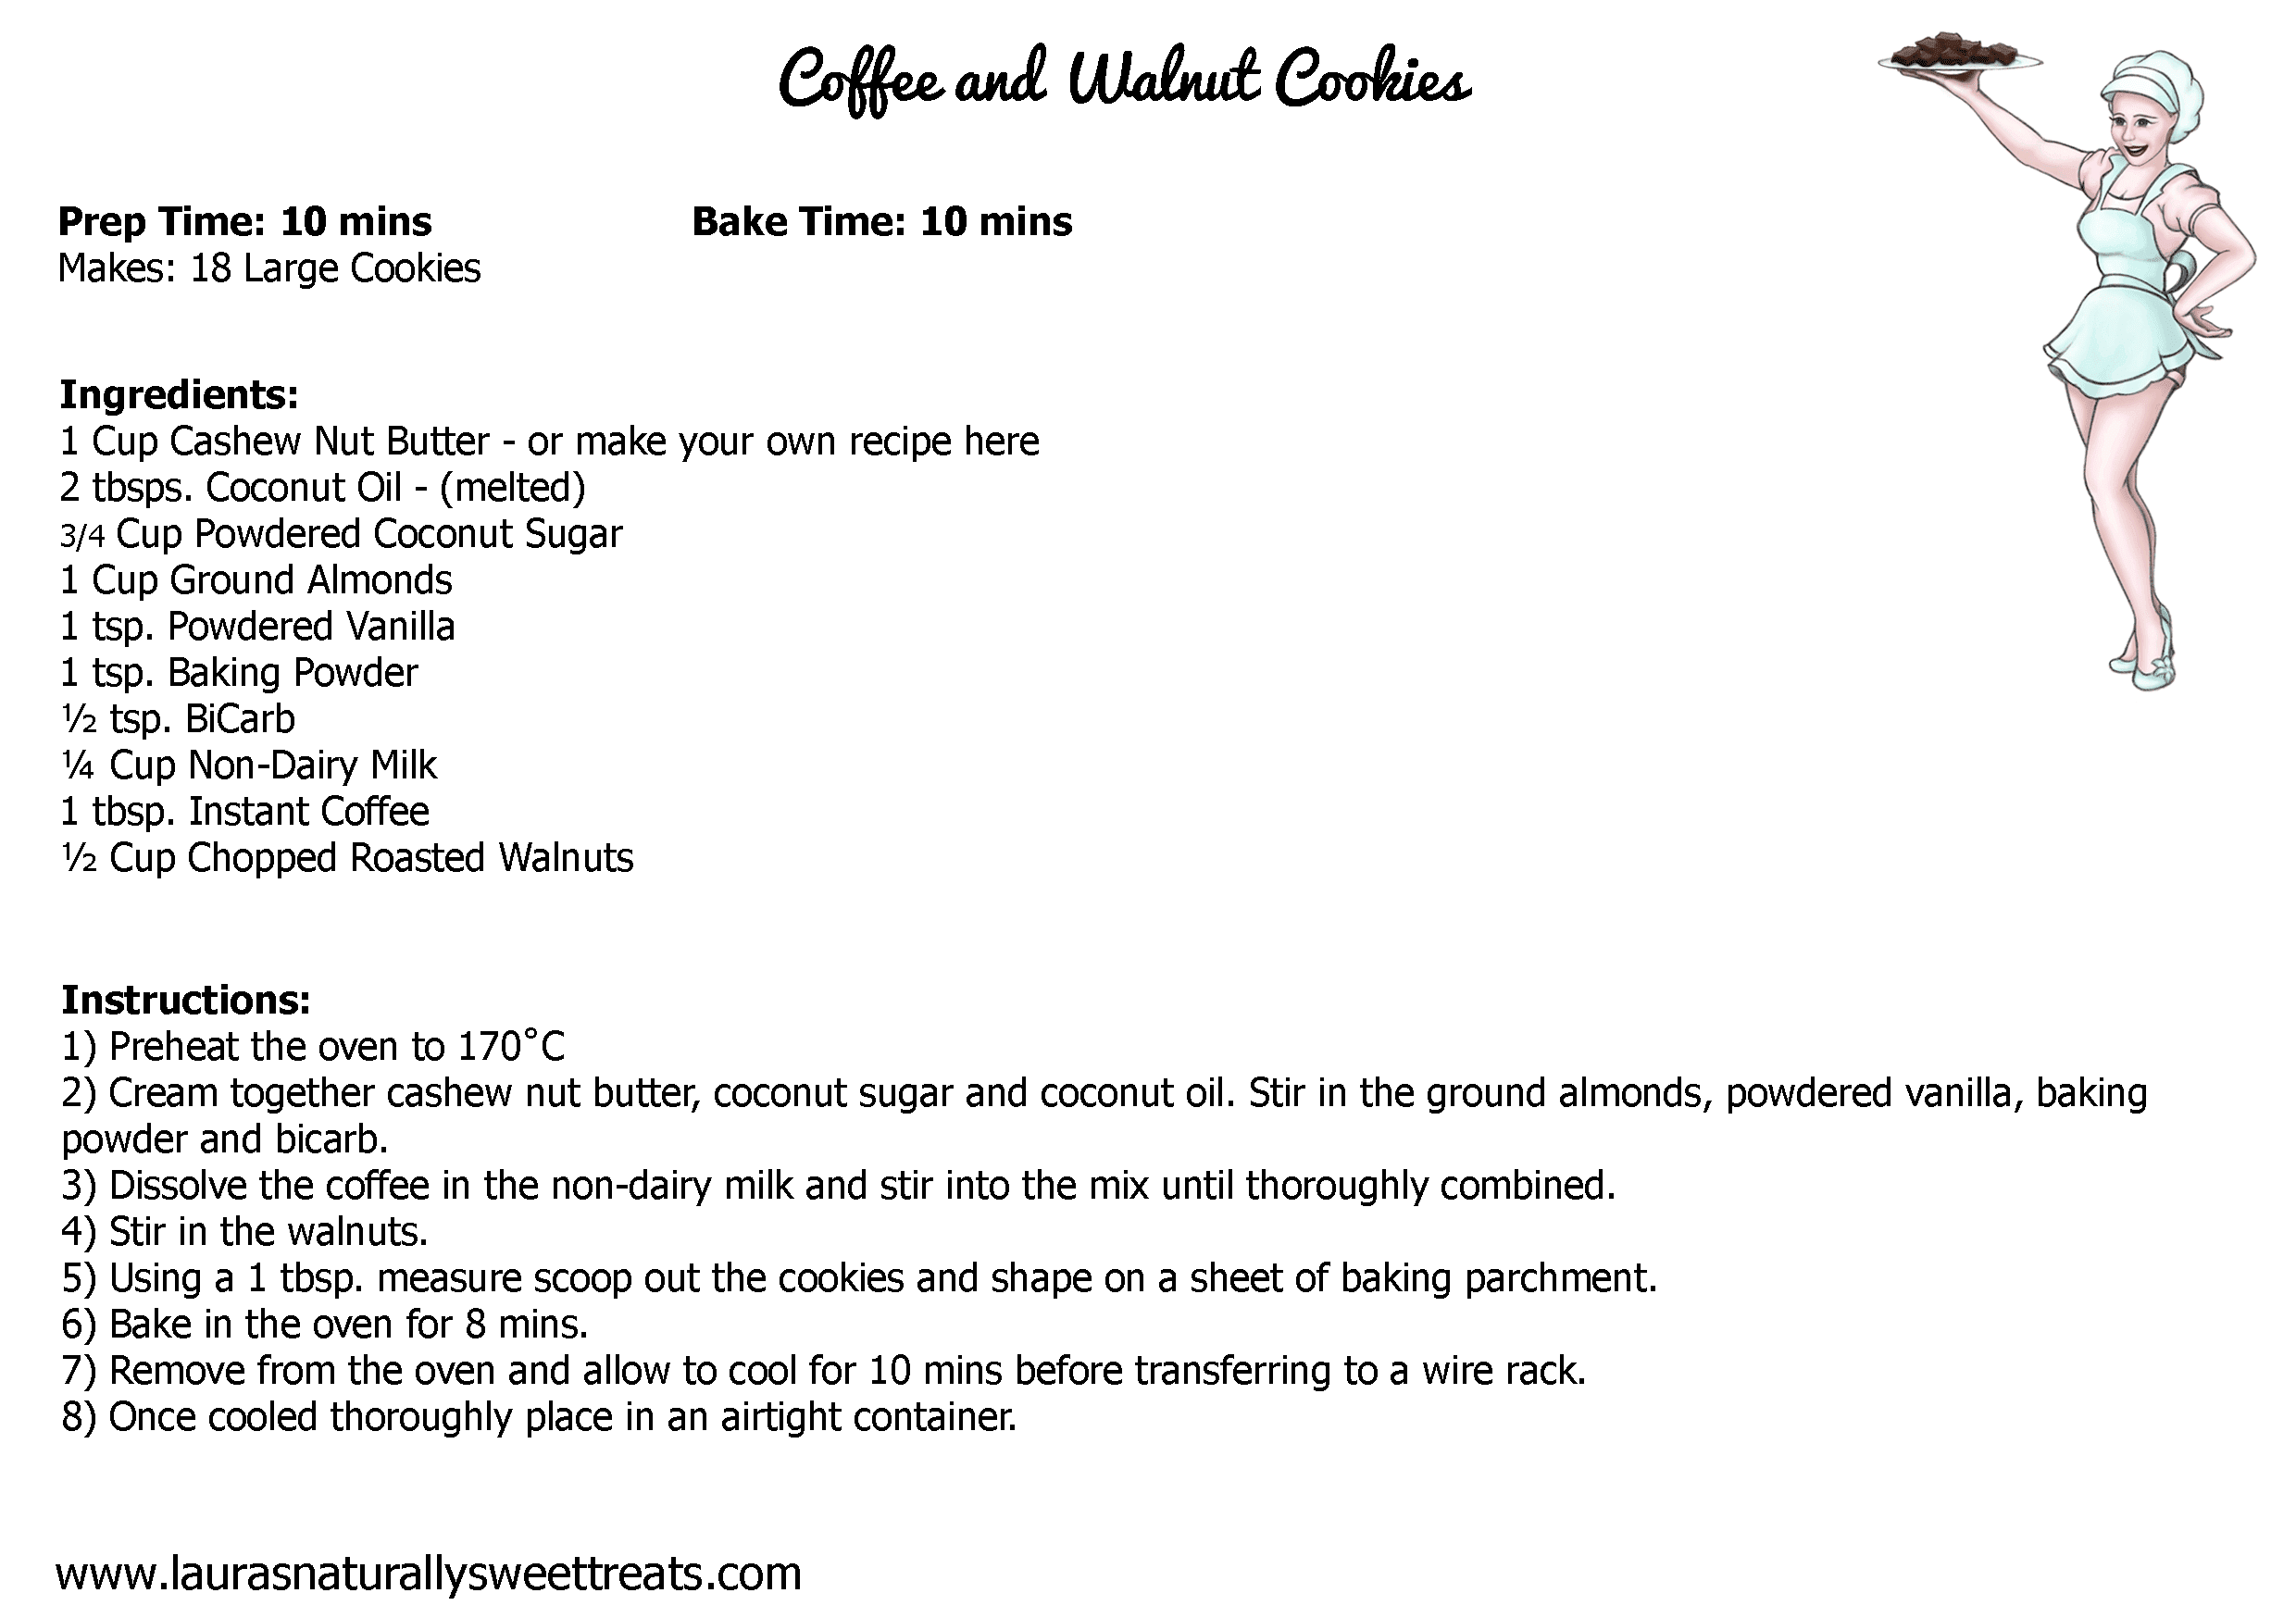 coffee-and-walnut-cookies-recipe-card